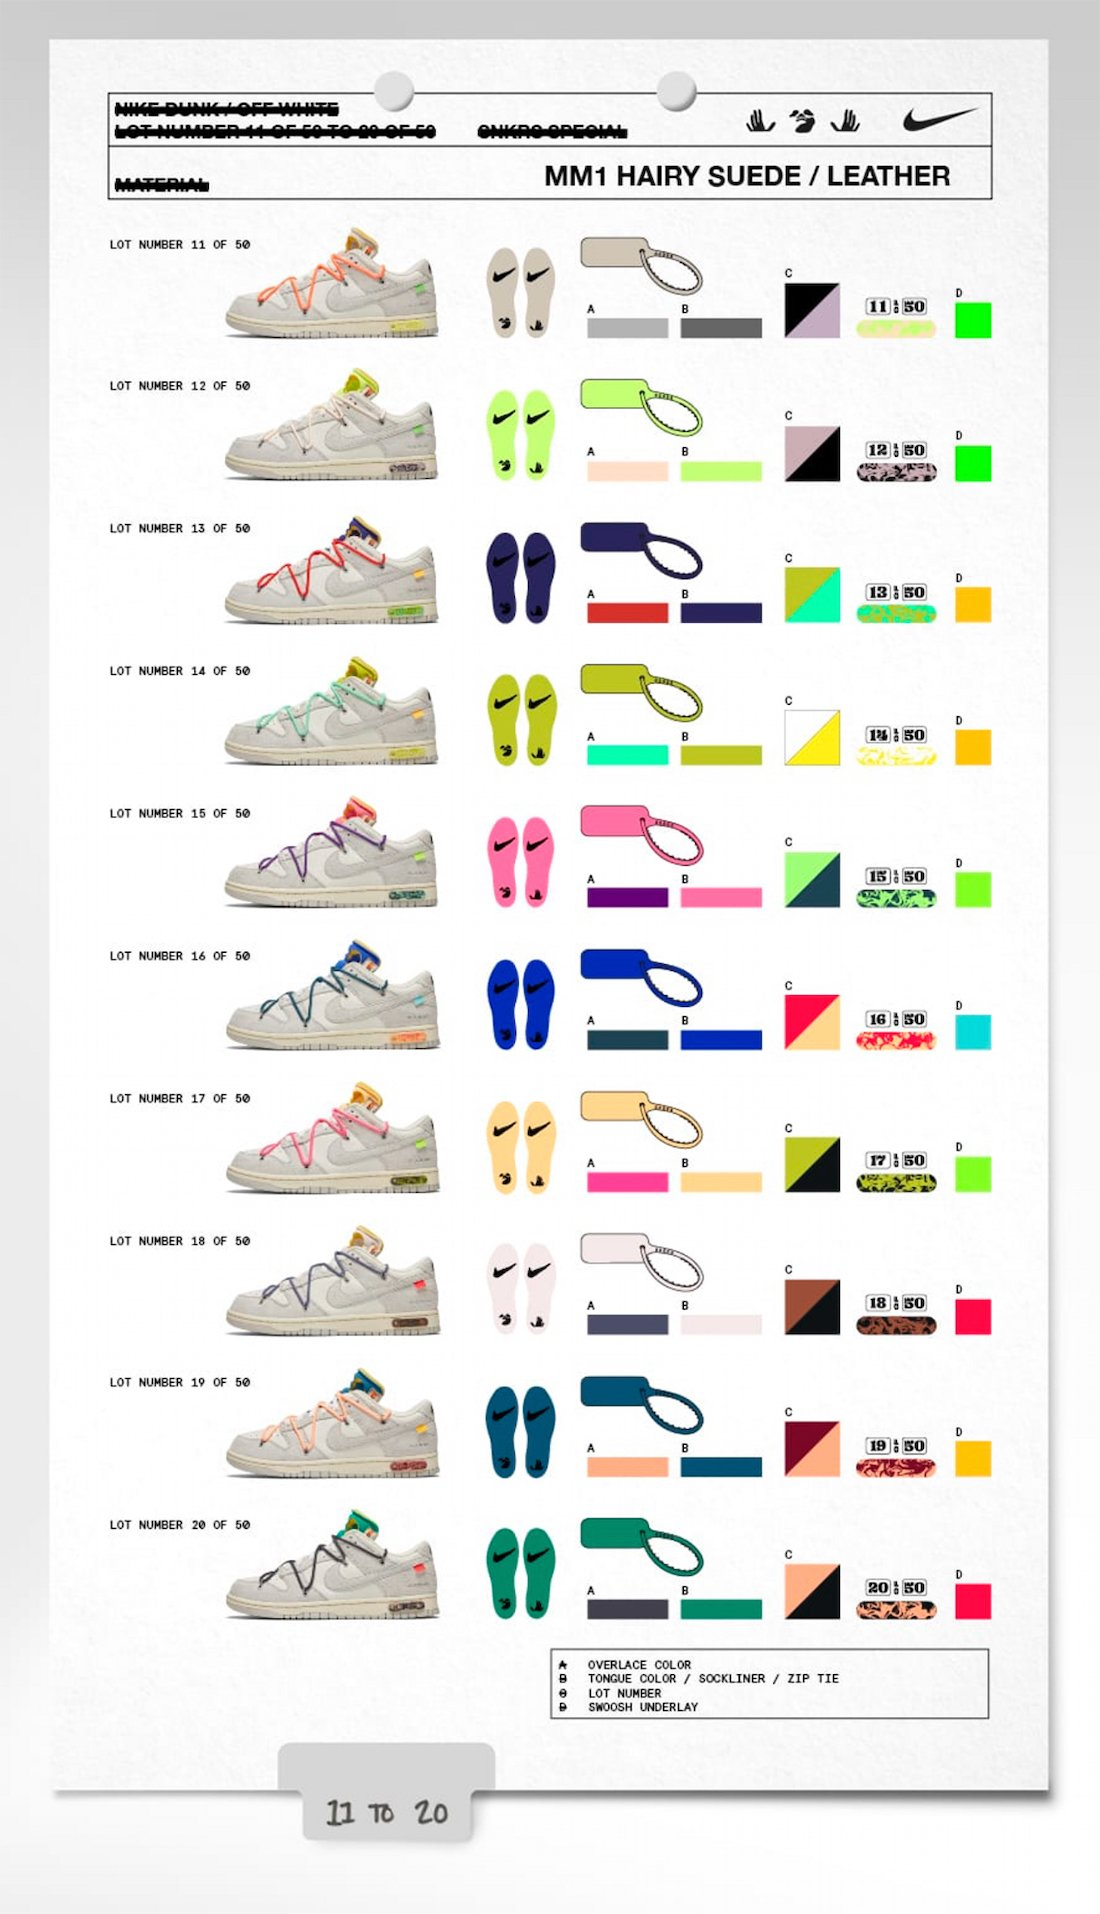 Off-White x Nike Dunk Low 11-20 Collection